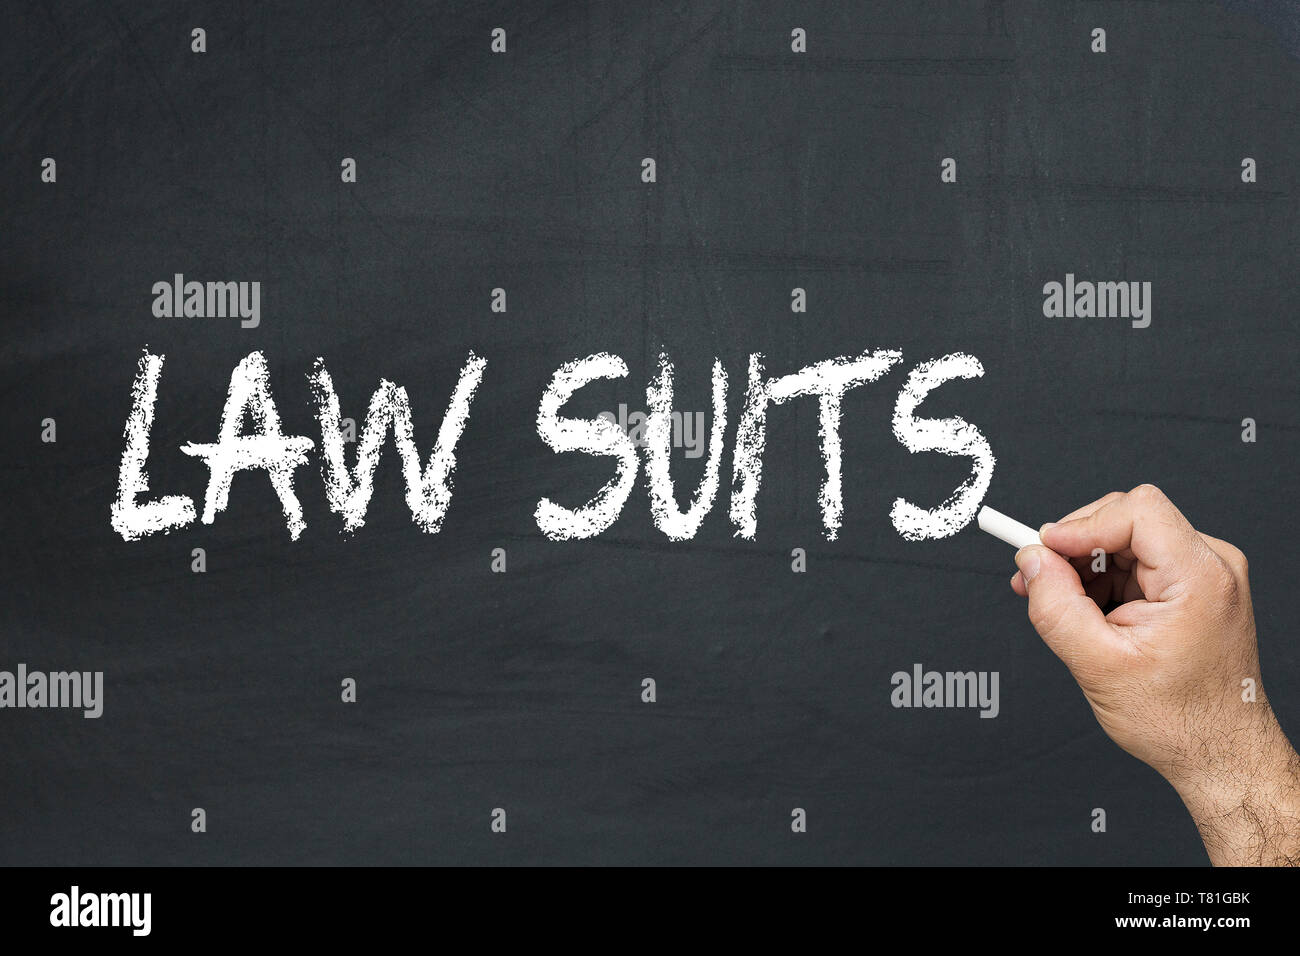 Male's hand writing text on the chalkboard: Law suits - Stock Image